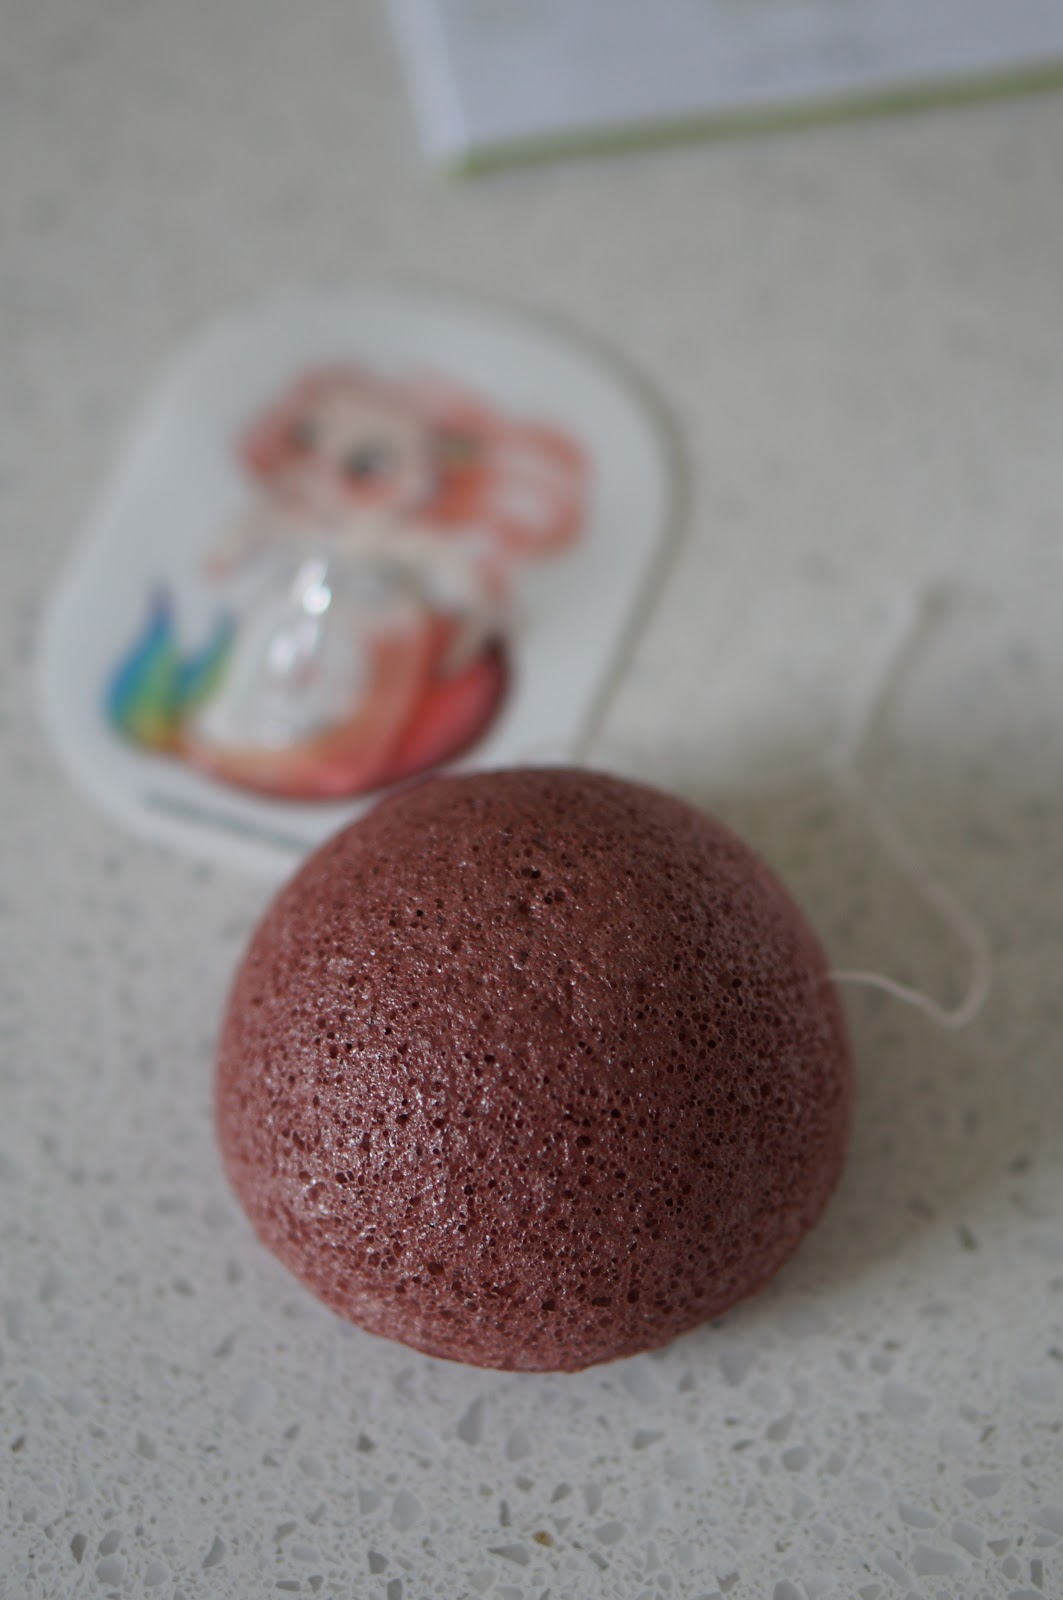 Popular North Carolina style blogger Rebecca Lately shares how to use a konjac sponge.  Check out her new Mystical Mermaid konjac sponge from The Konjac Sponge Company.